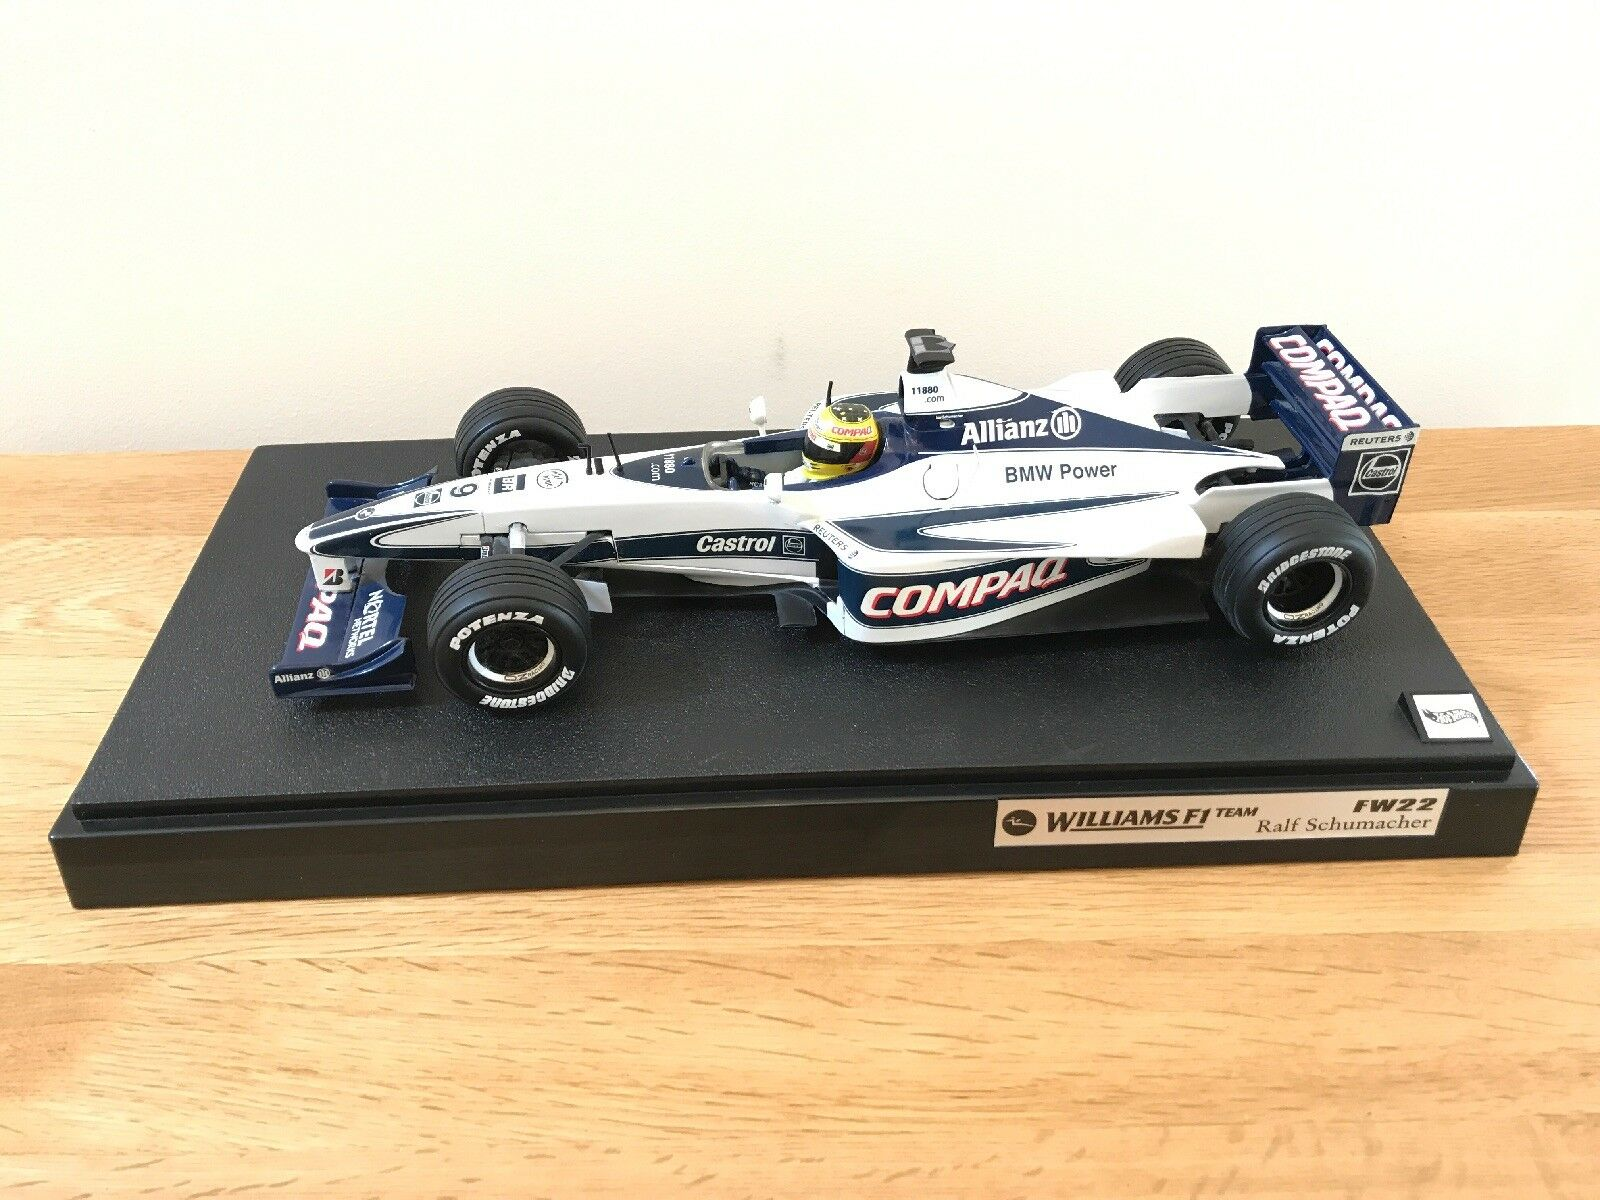 1 18 Hot Wheels 26735 Williams FW22 Ralf Schumacher F1 2000